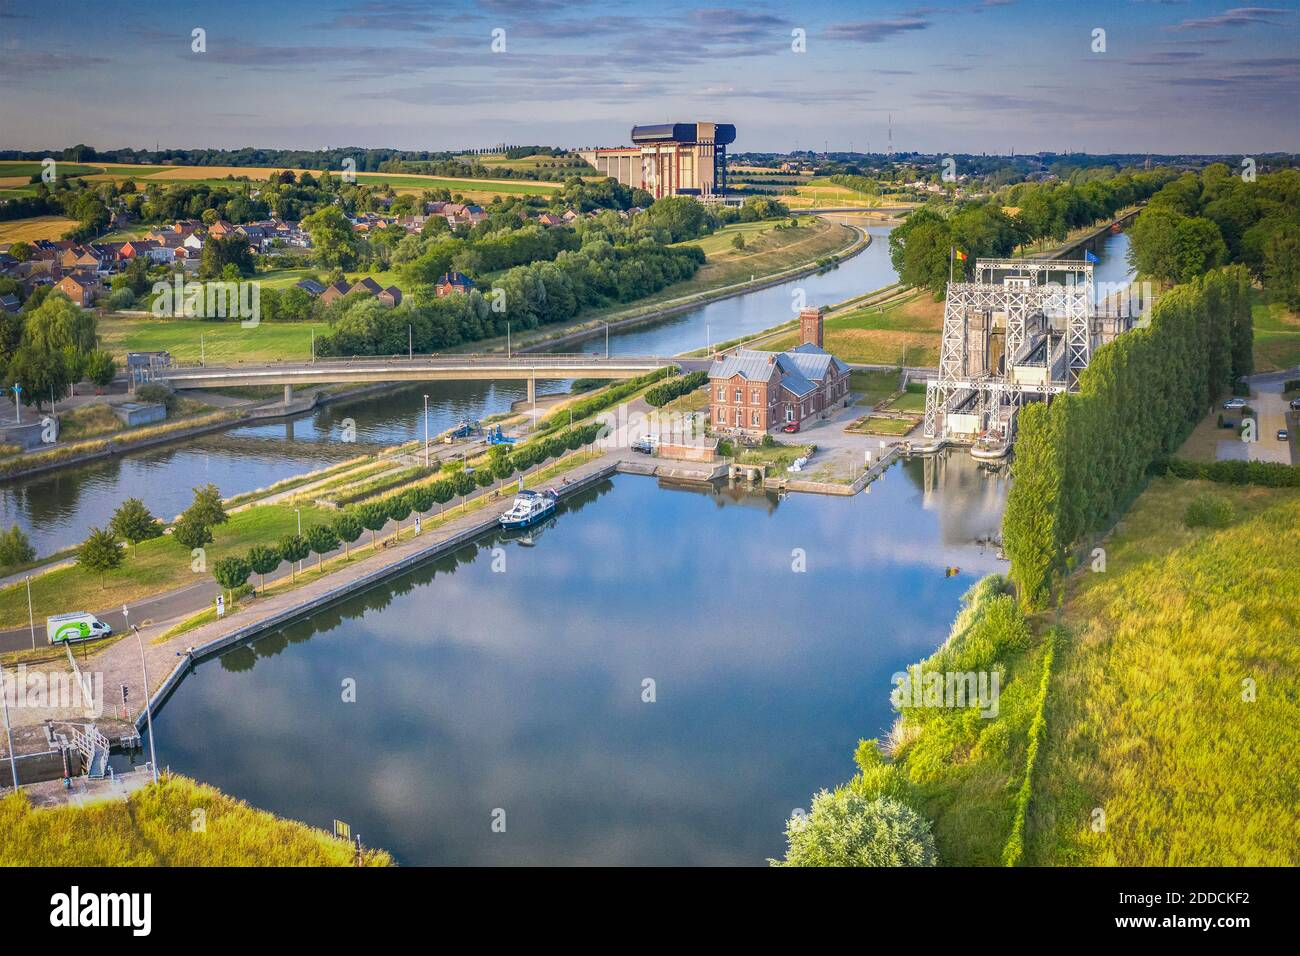 Belgium,HainautProvince, Aerial view of historical boat lift on CanalduCentre withStrepy-Thieulift in background Stock Photo